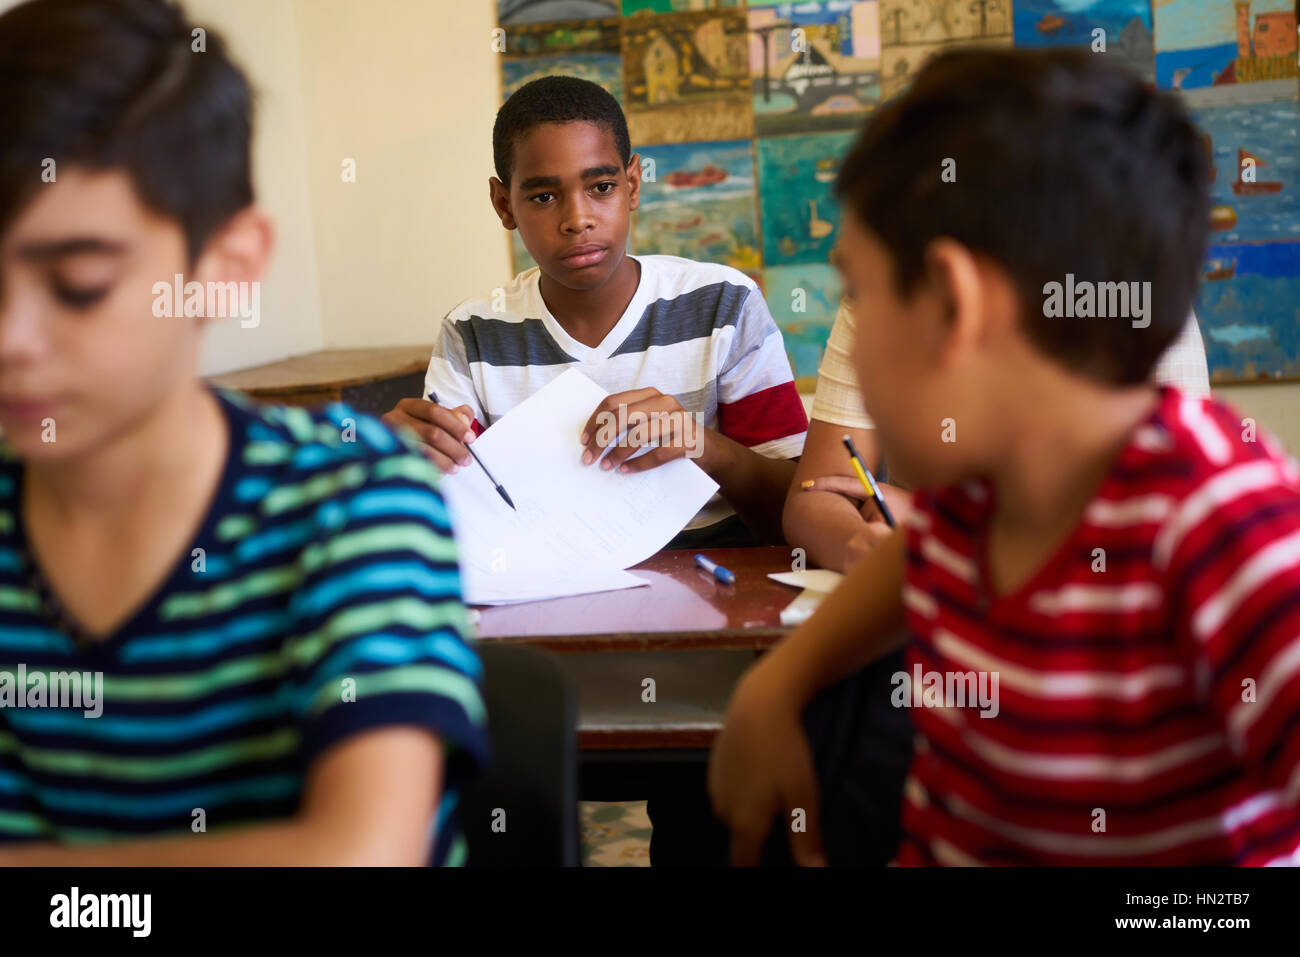 Young people and education. Group of hispanic students in class at school during lesson. Frustrated boys cheating - Stock Image